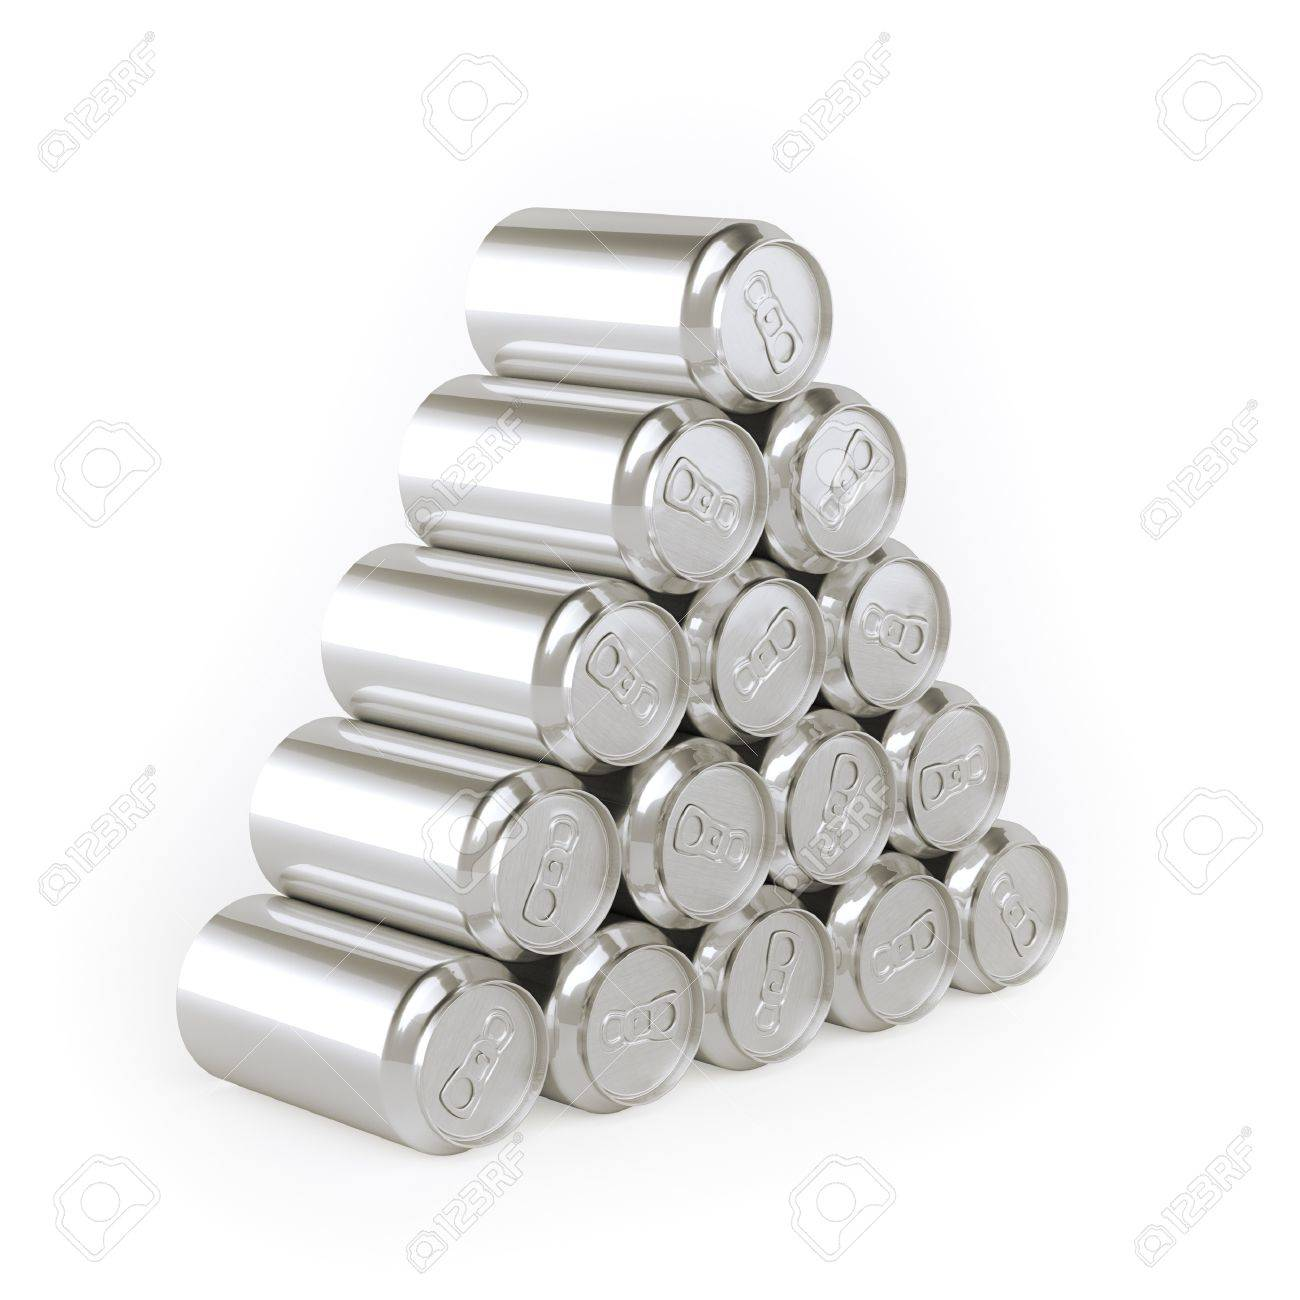 Pyramid of cans Tin-Plate Material - 21923206